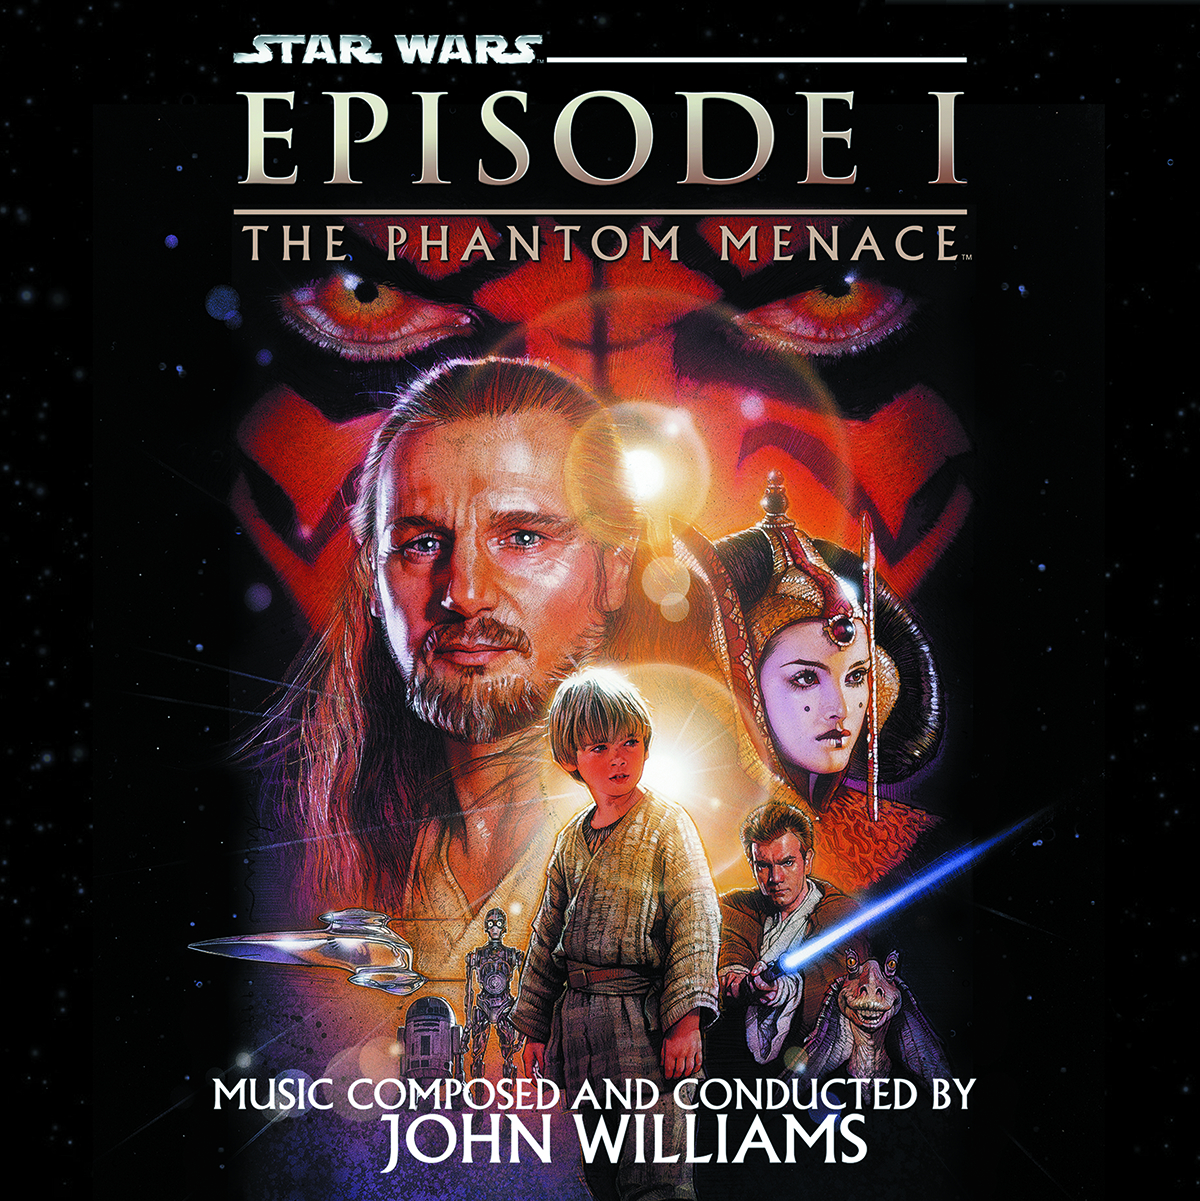 SW EP 1 THE PHANTOM MENACE OST LP